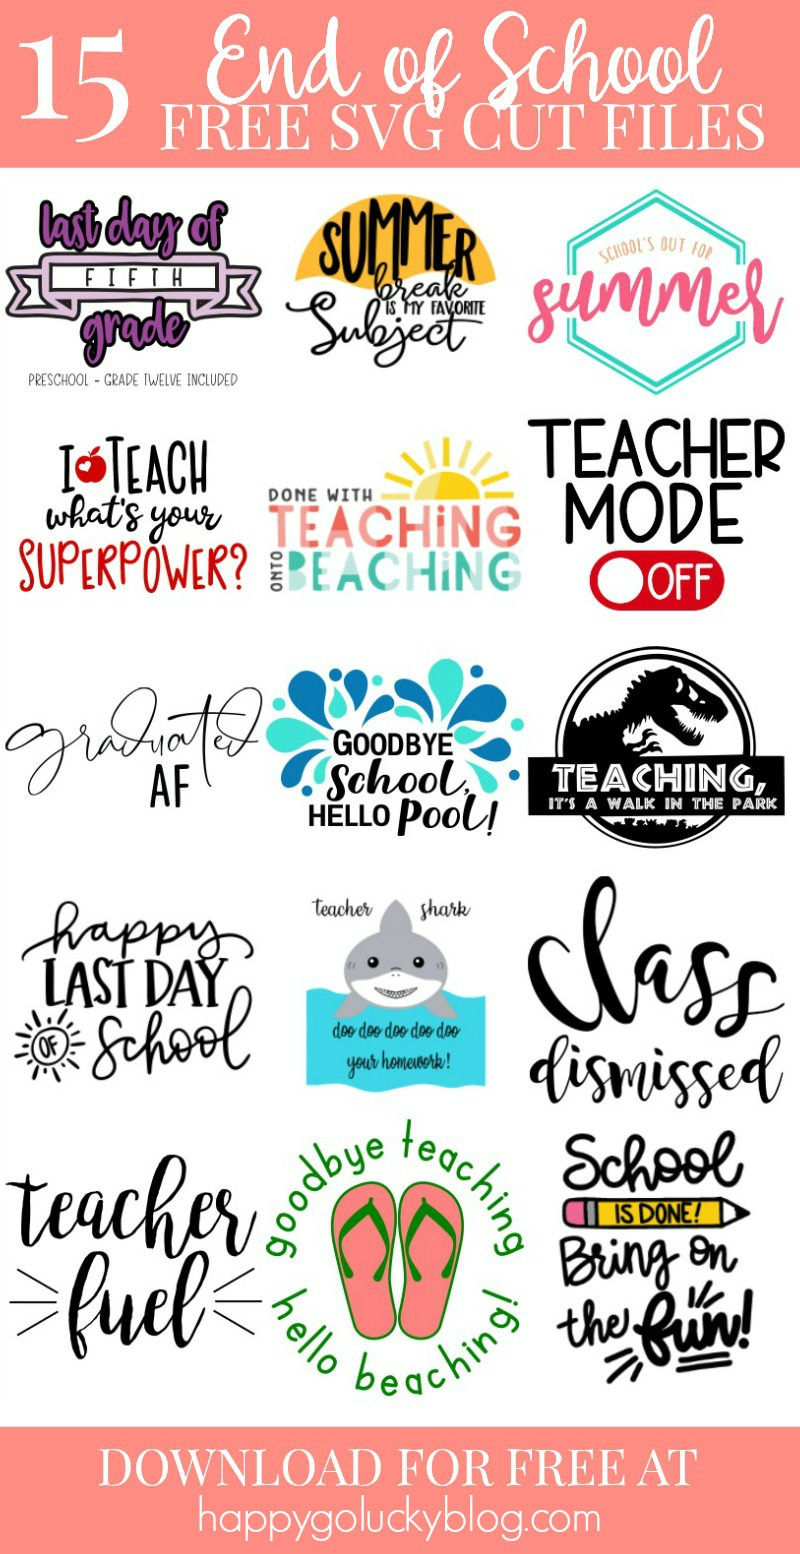 Download Free Teacher SVG Cut Files for Teacher Gifts and More ...